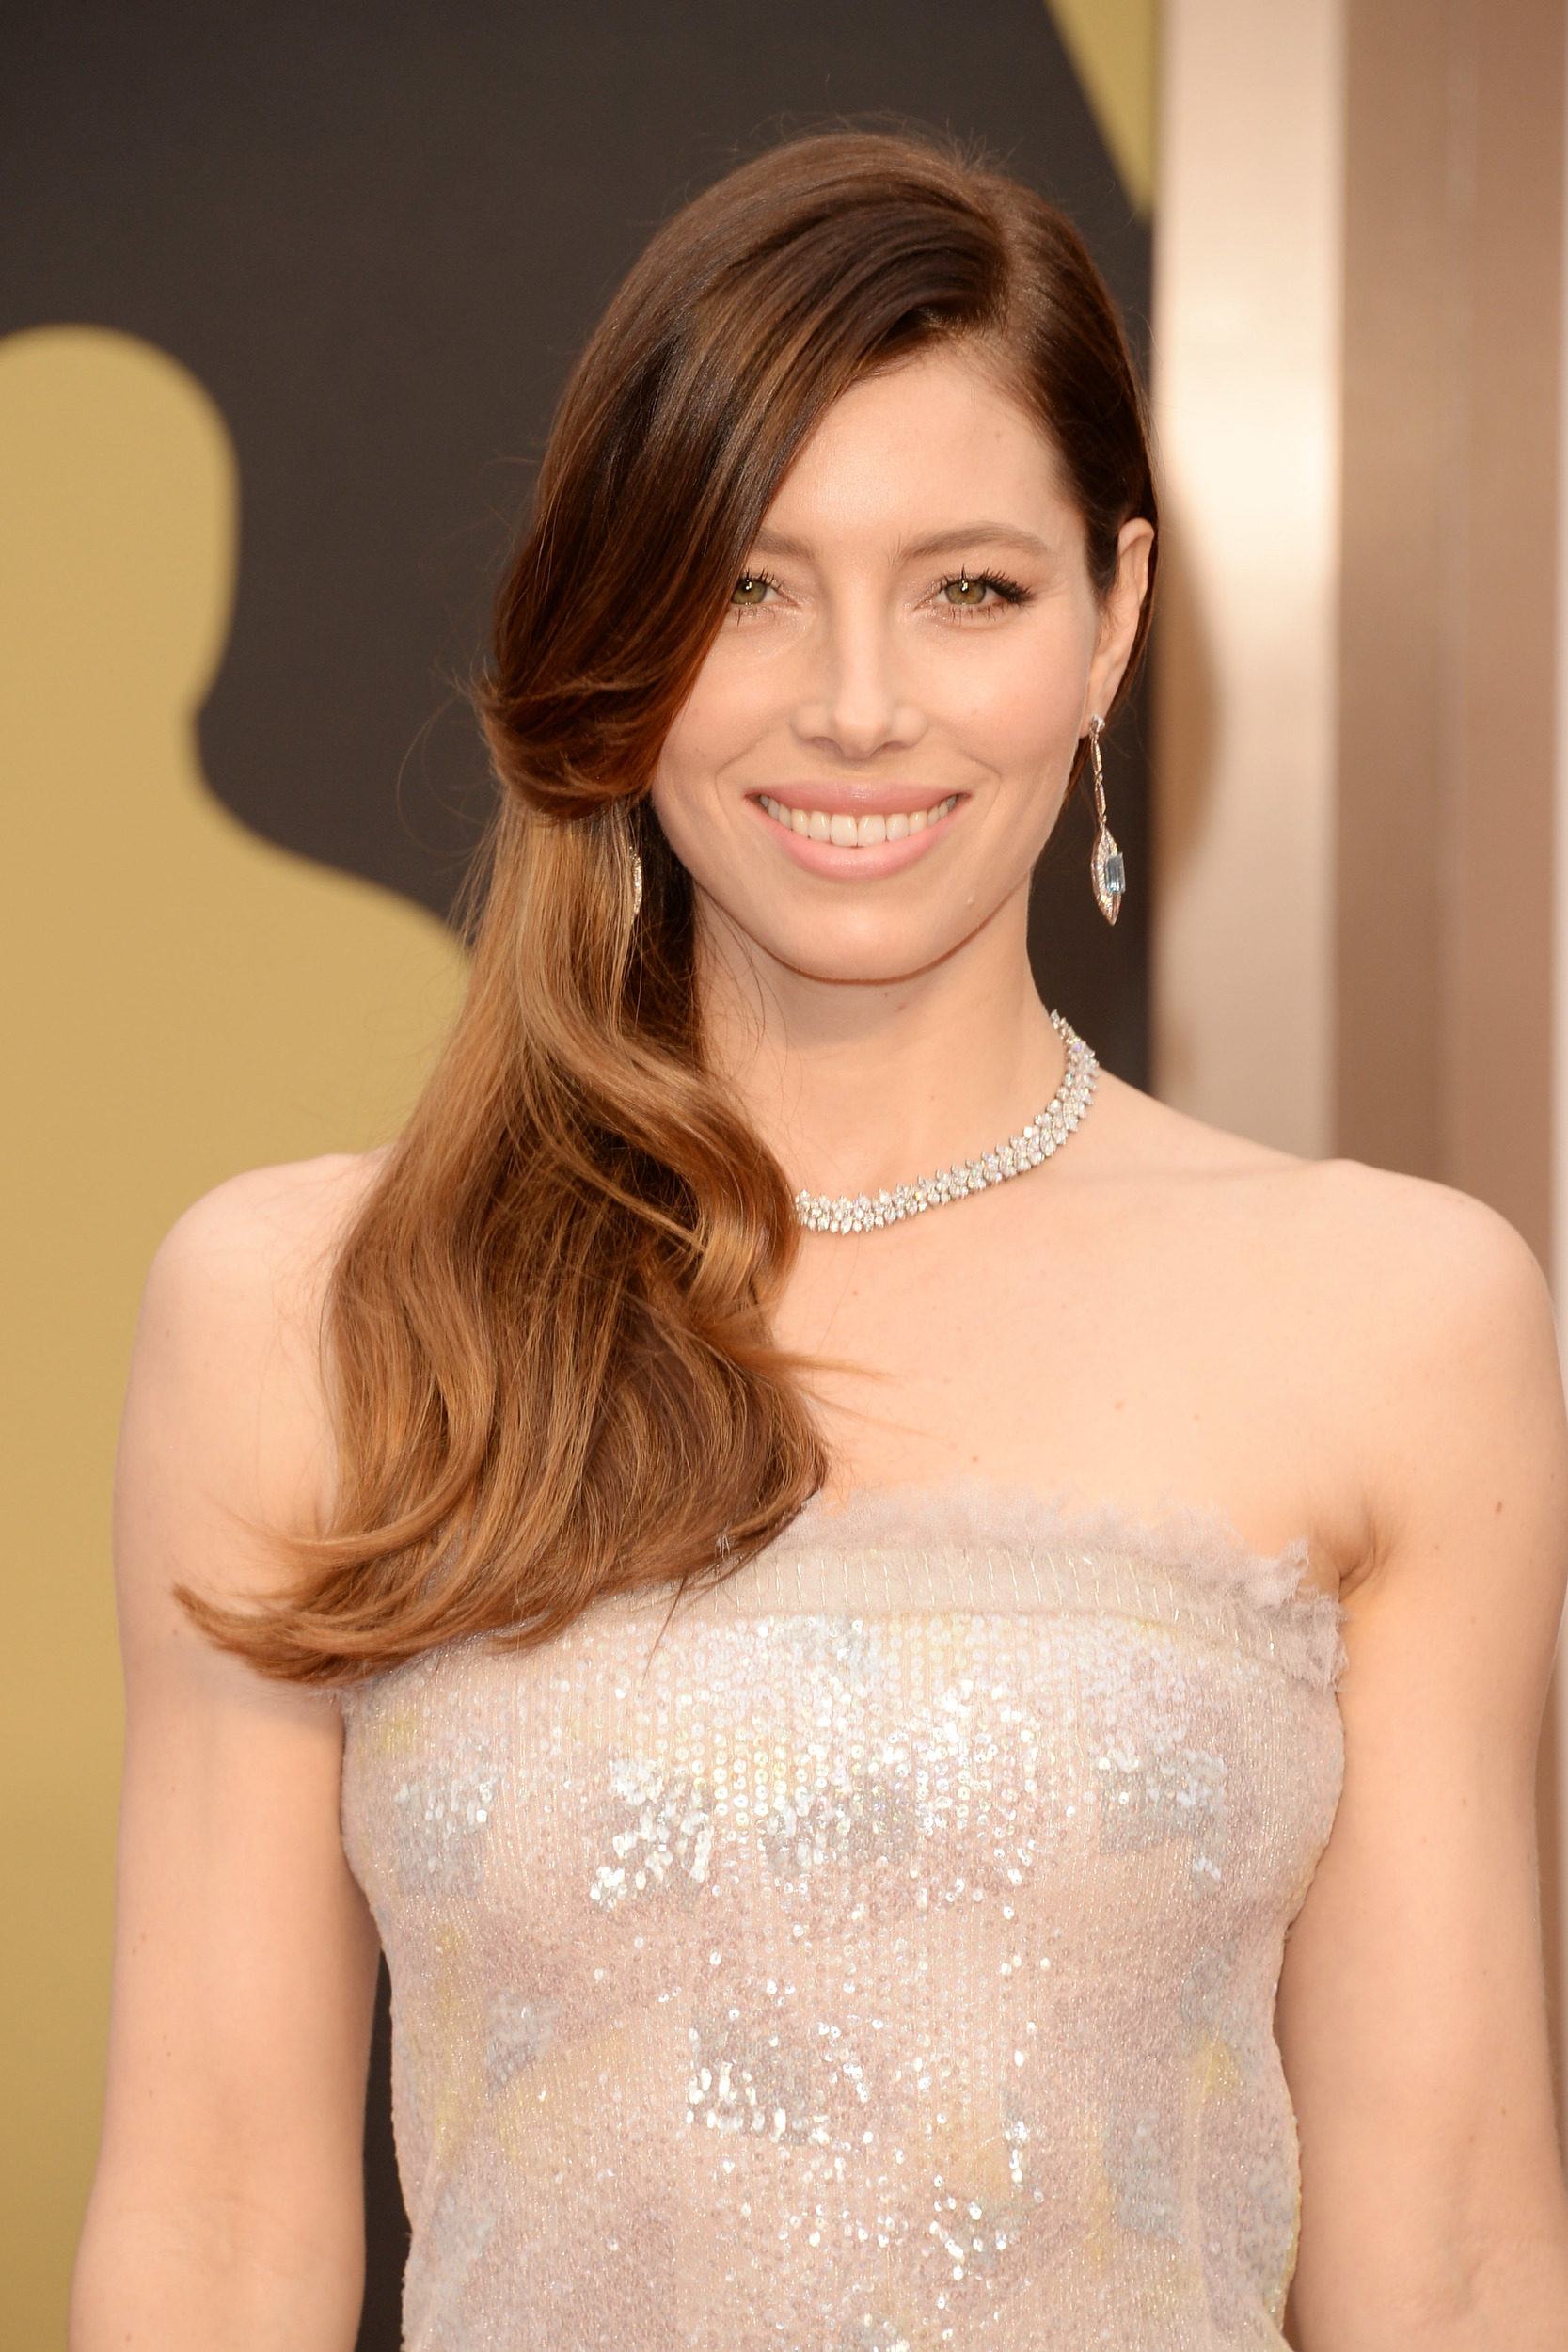 Jessica Biel diamond jewelry at Oscars 2014